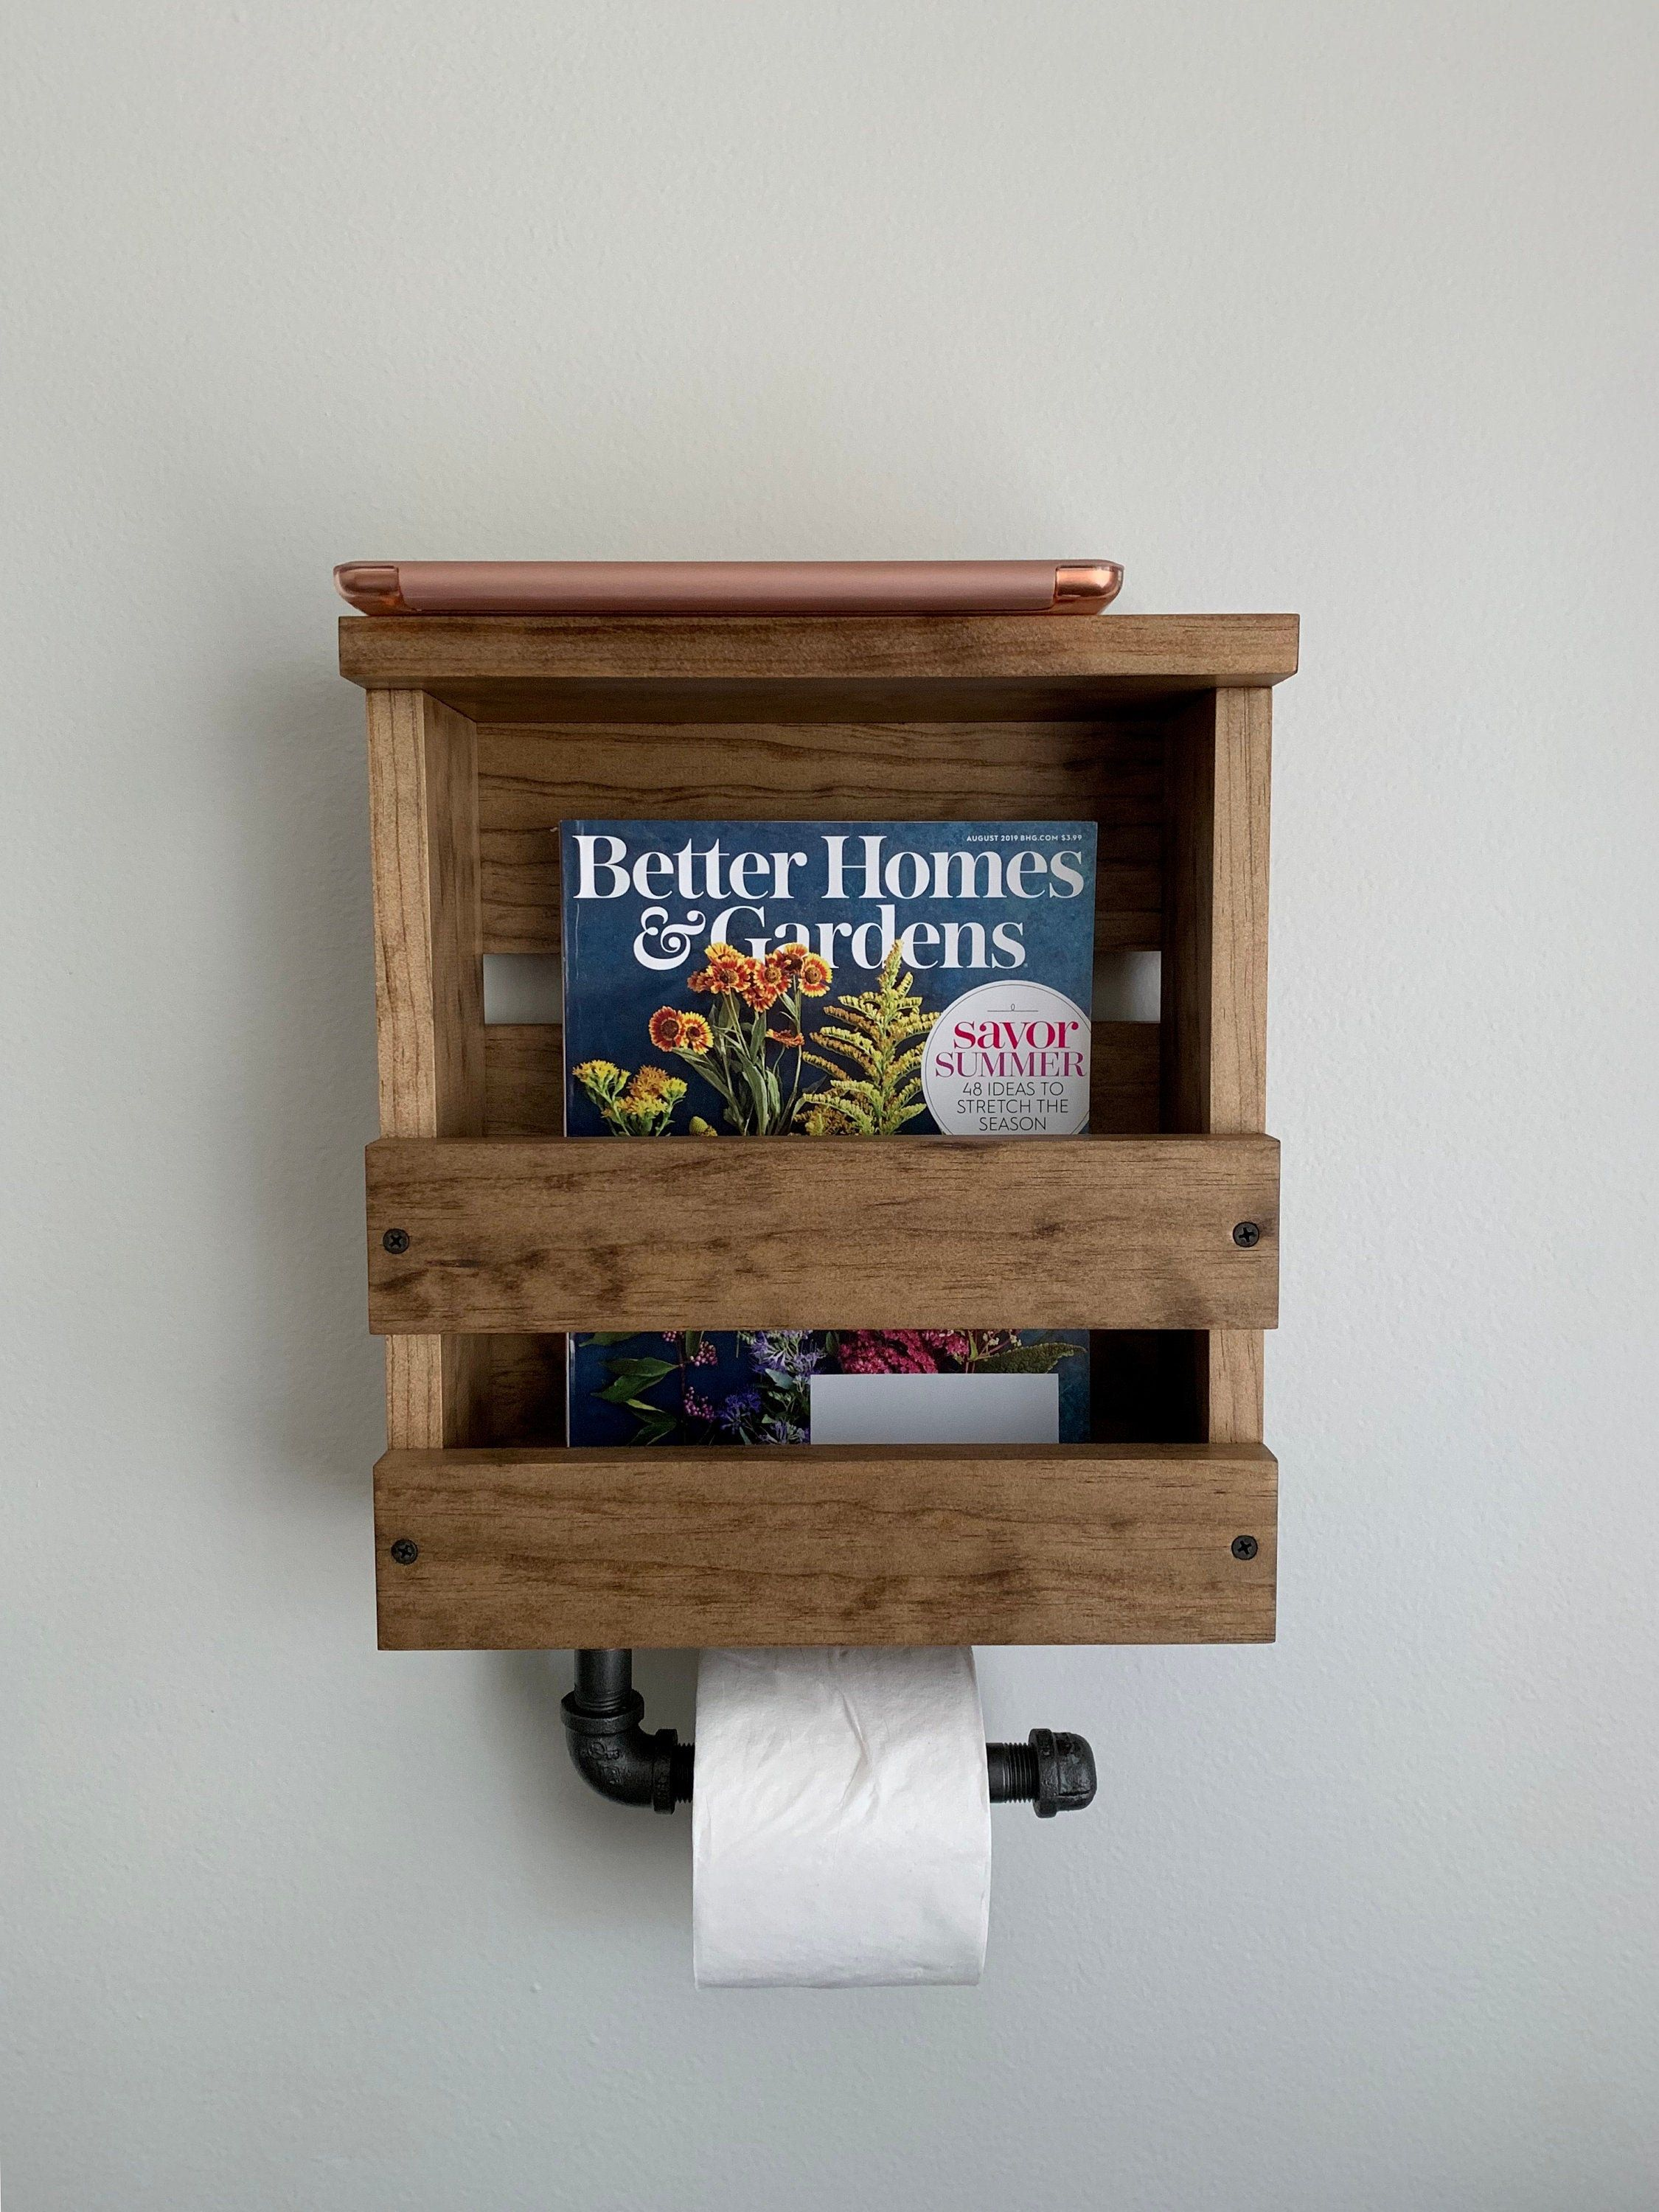 Magazine And Toilet Paper Holder With Shelf Industrial Toilet Etsy In 2021 Toilet Paper Holder Shelf Rustic Toilet Paper Holders Toilet Paper Holder